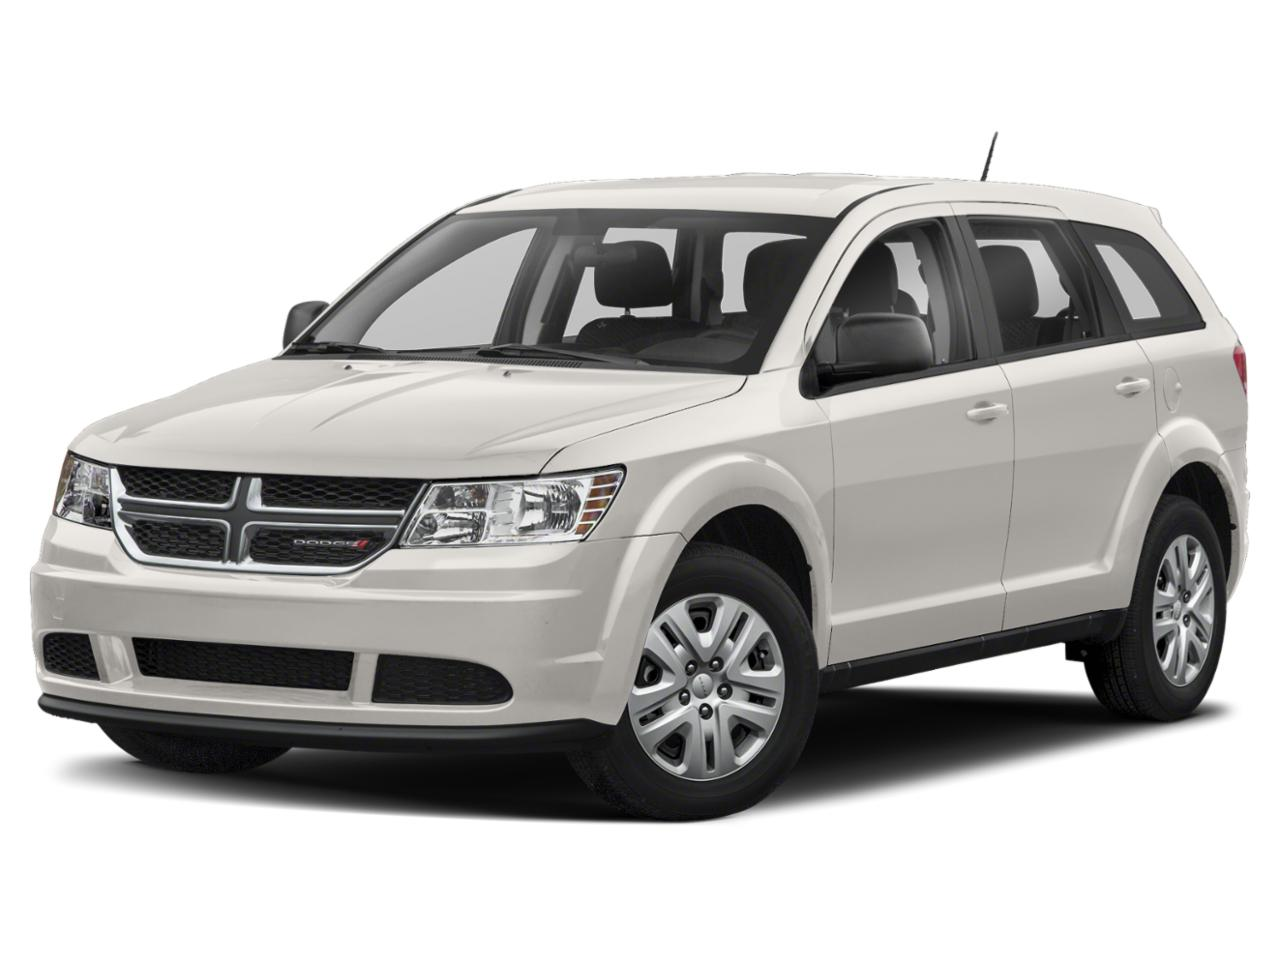 2020 Dodge Journey Vehicle Photo in BOONVILLE, IN 47601-9633